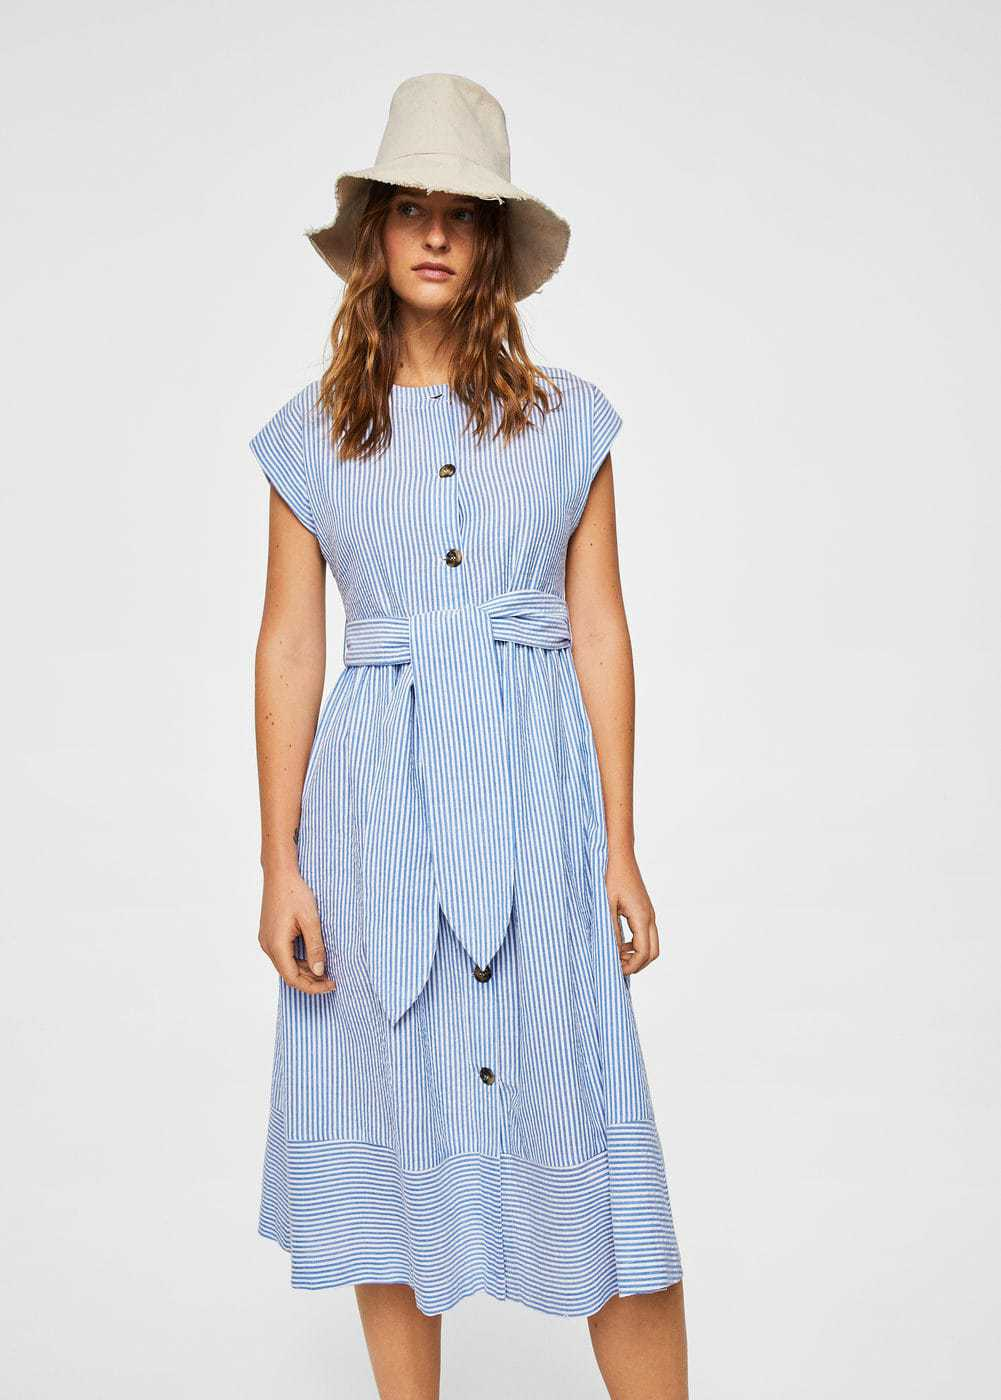 Blue-and-white striped midi tie-waist button-front midi dress with cap sleeves